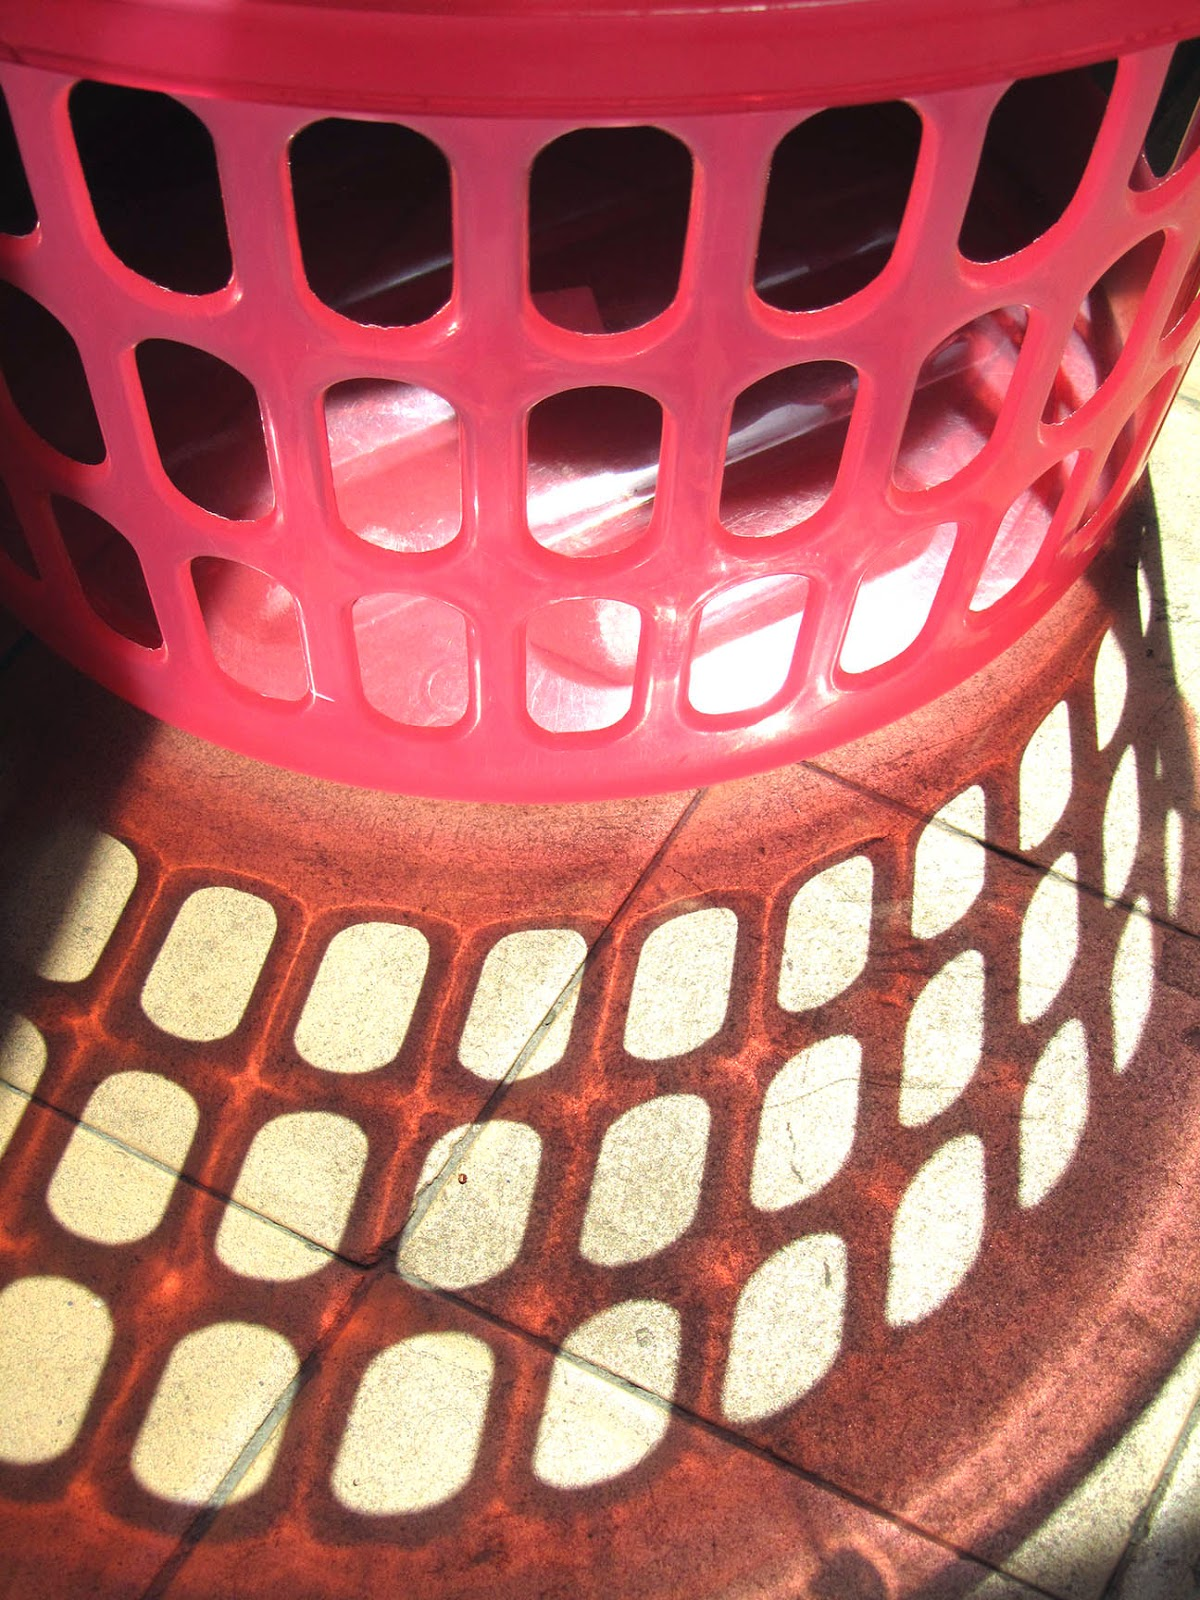 pink laundry basket with shadow